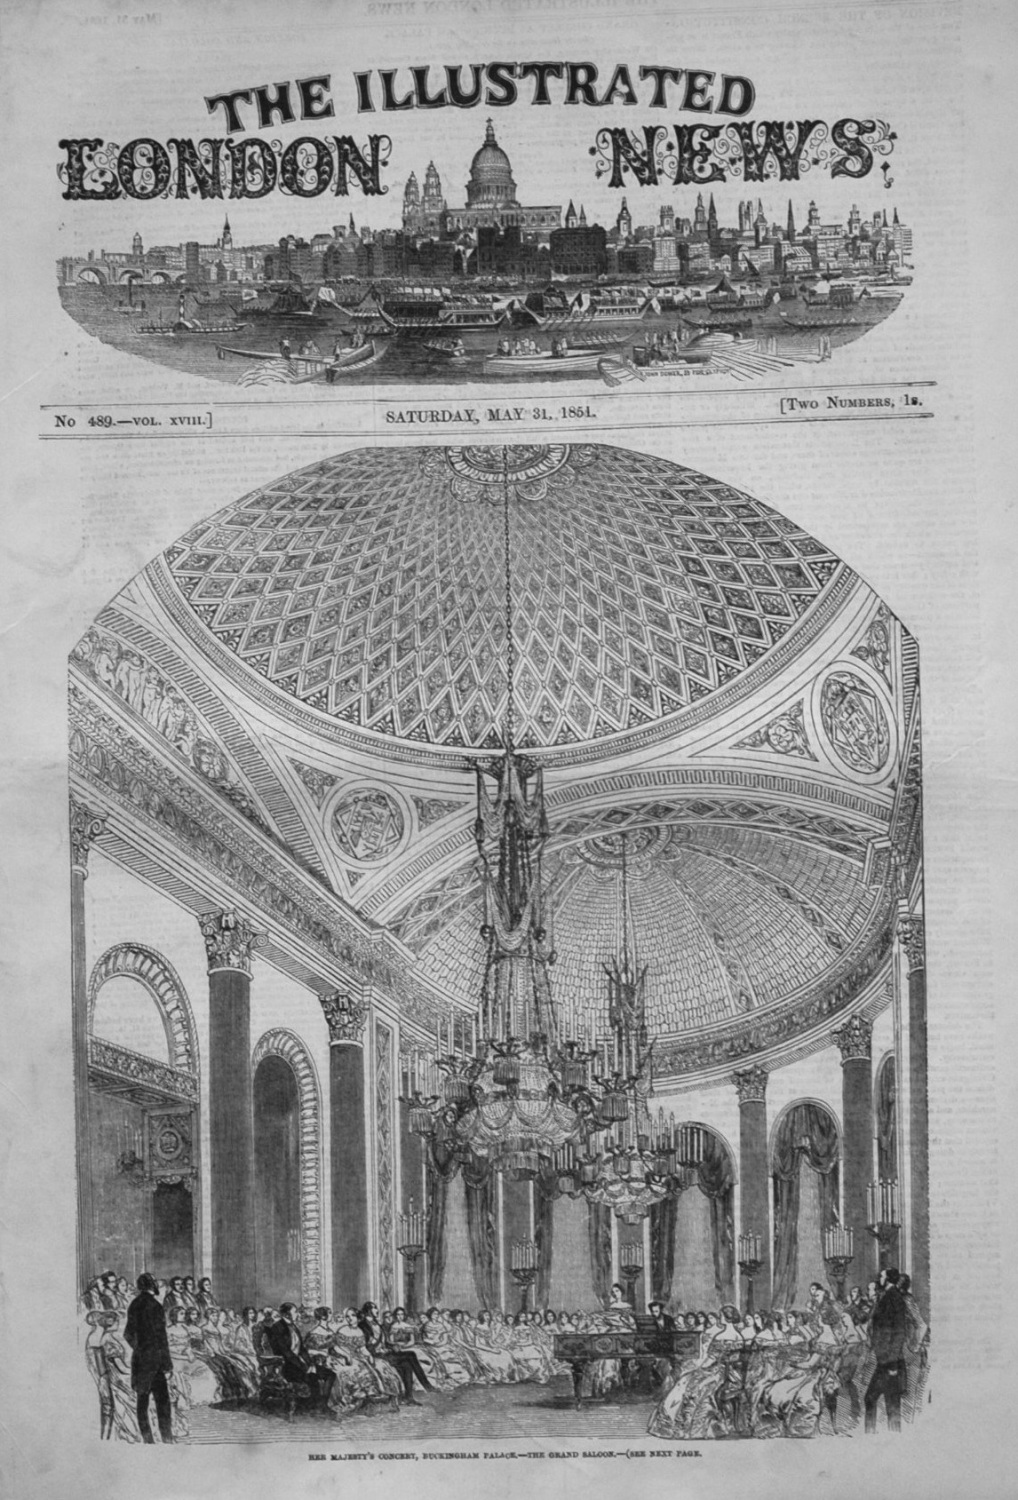 Illustrated London News May 31st 1851.